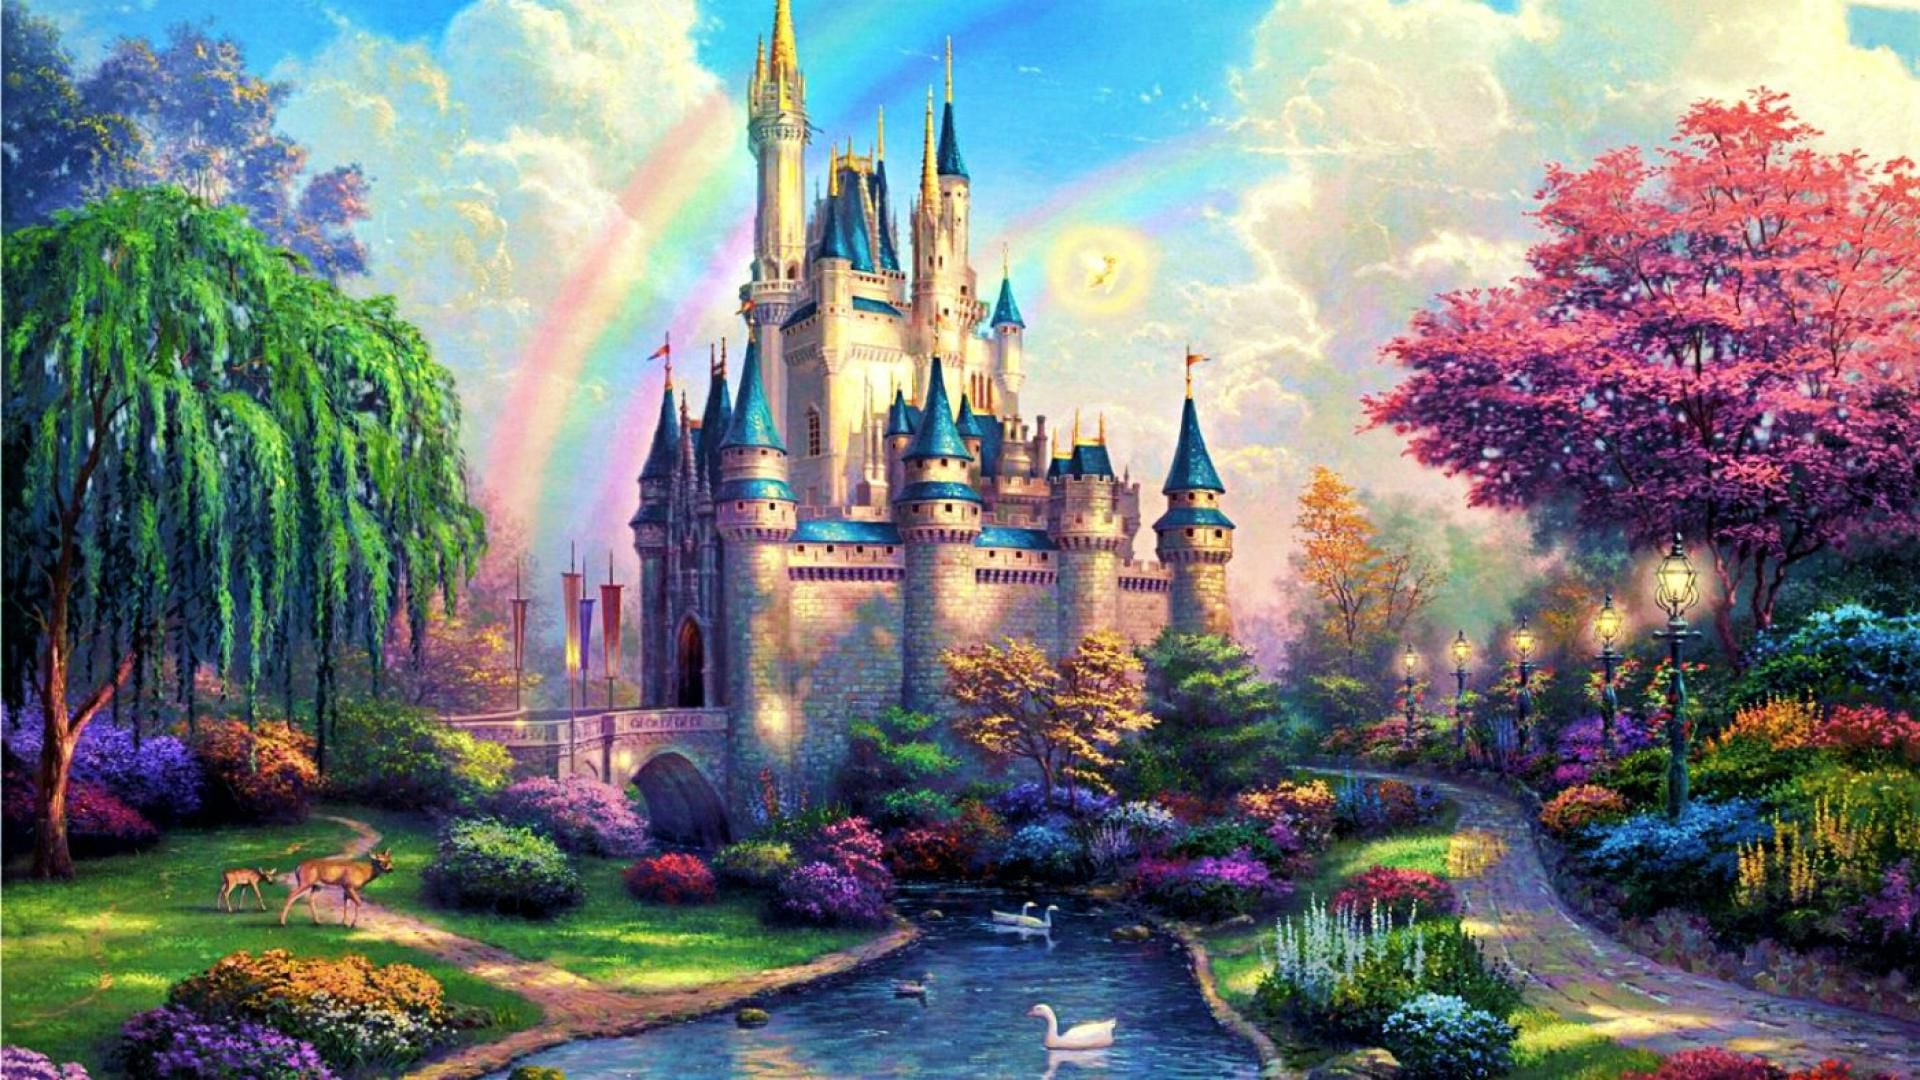 21 Fairy Tales Castles HD wallpapers High Quality Download 1920x1080